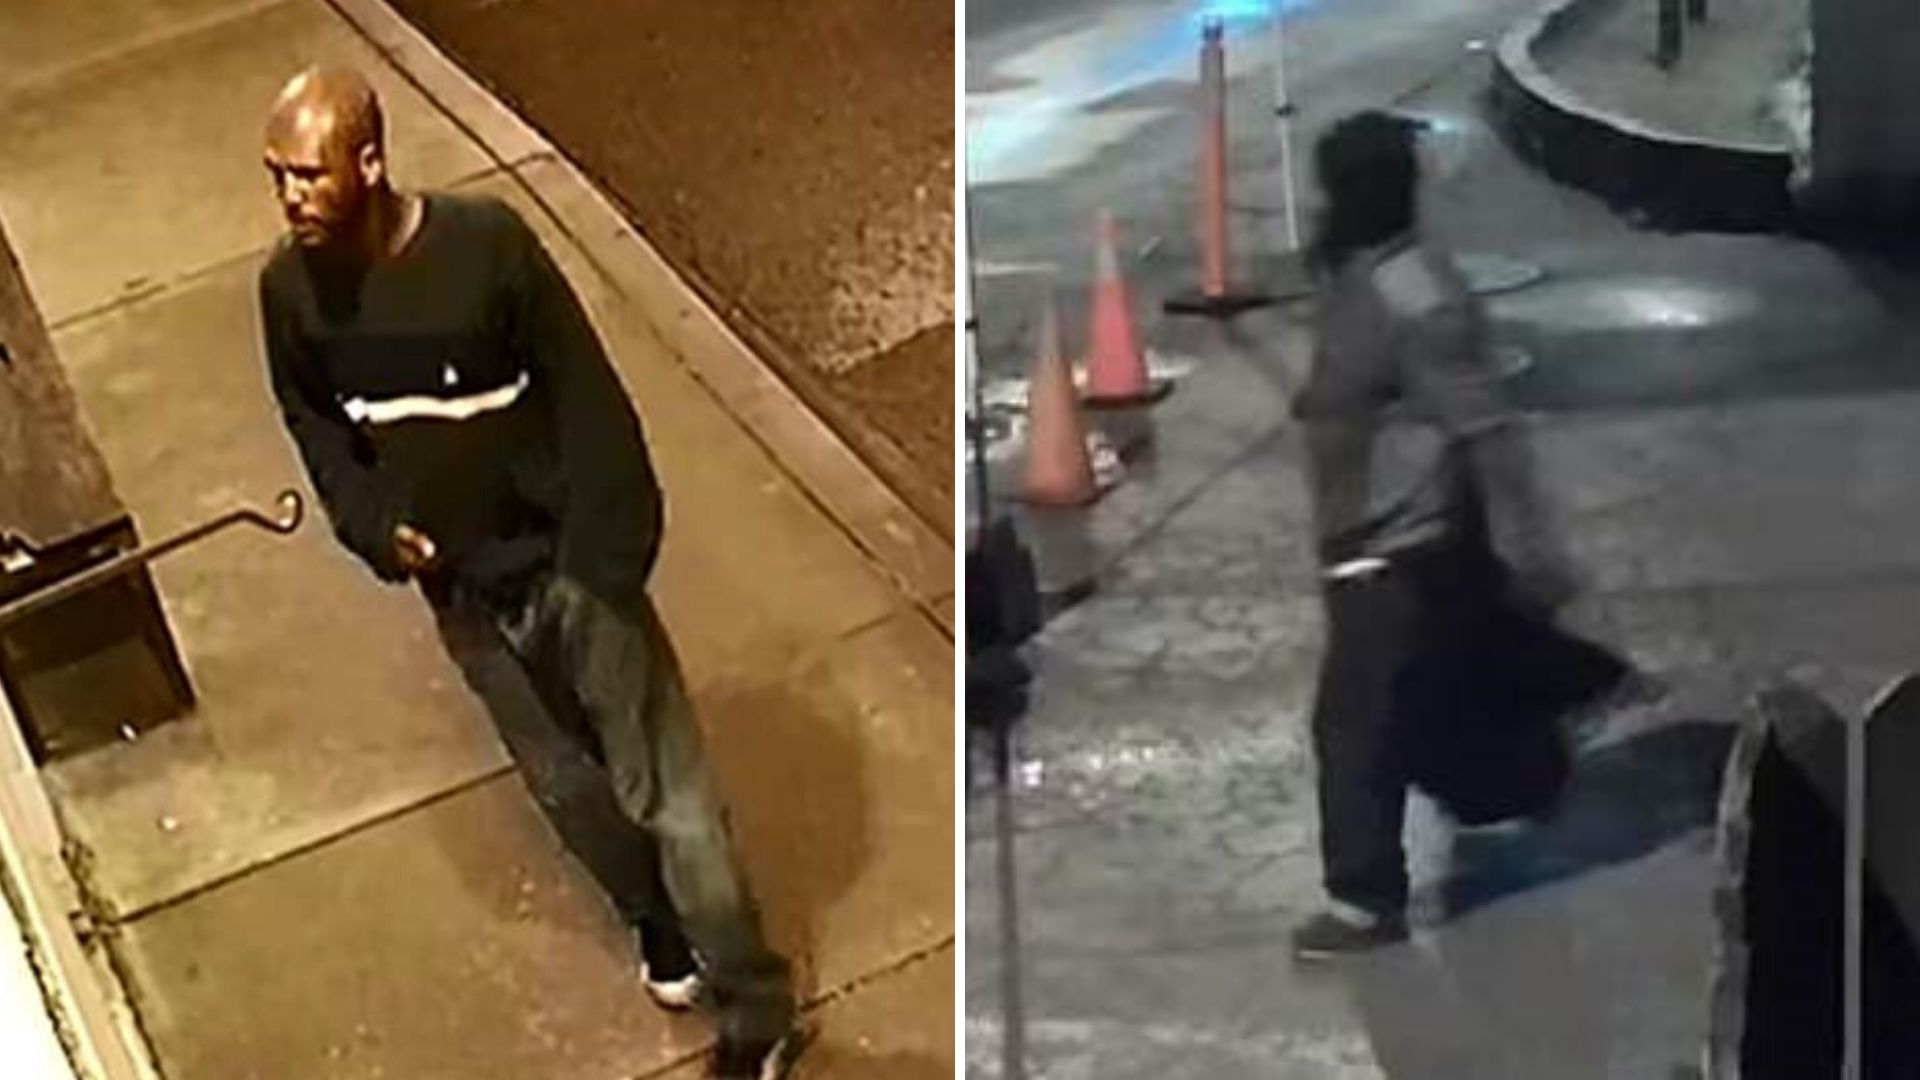 East Nashville Restaurant Burglary Suspects - 3/26/2020